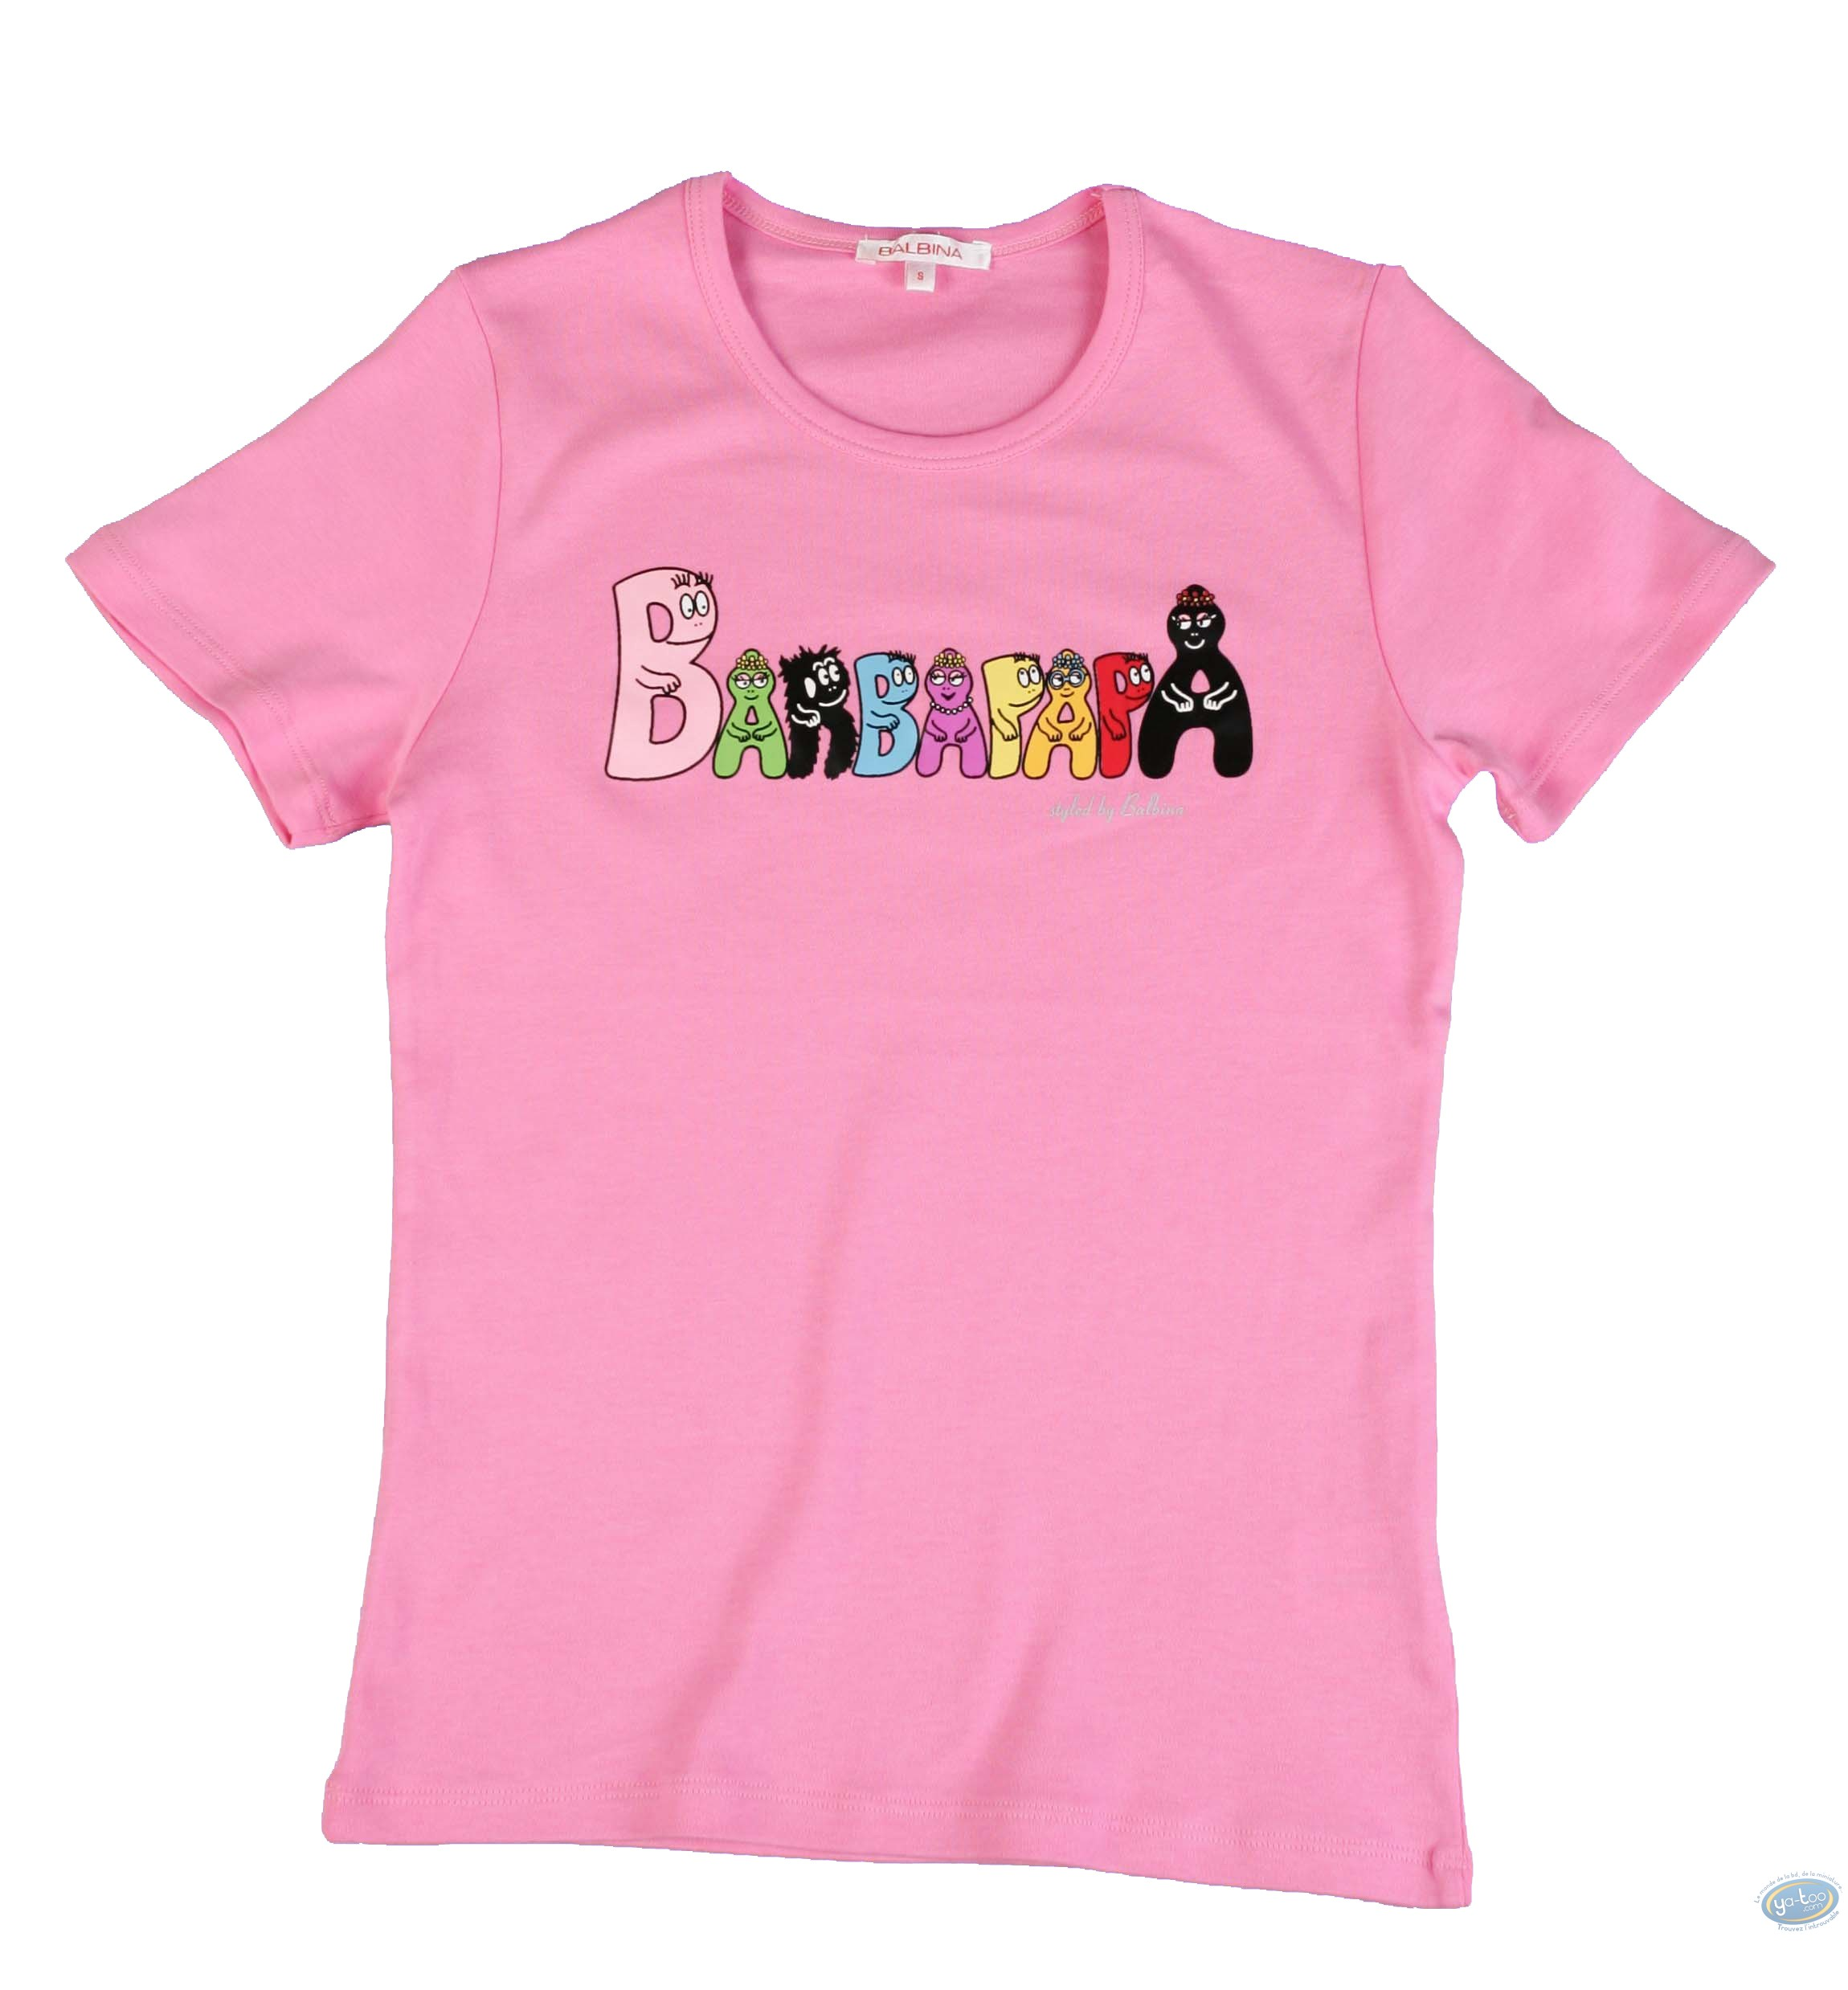 Clothes, Barbapapa : T-shirt long-sleeve pink Barbapapa: size L, logo